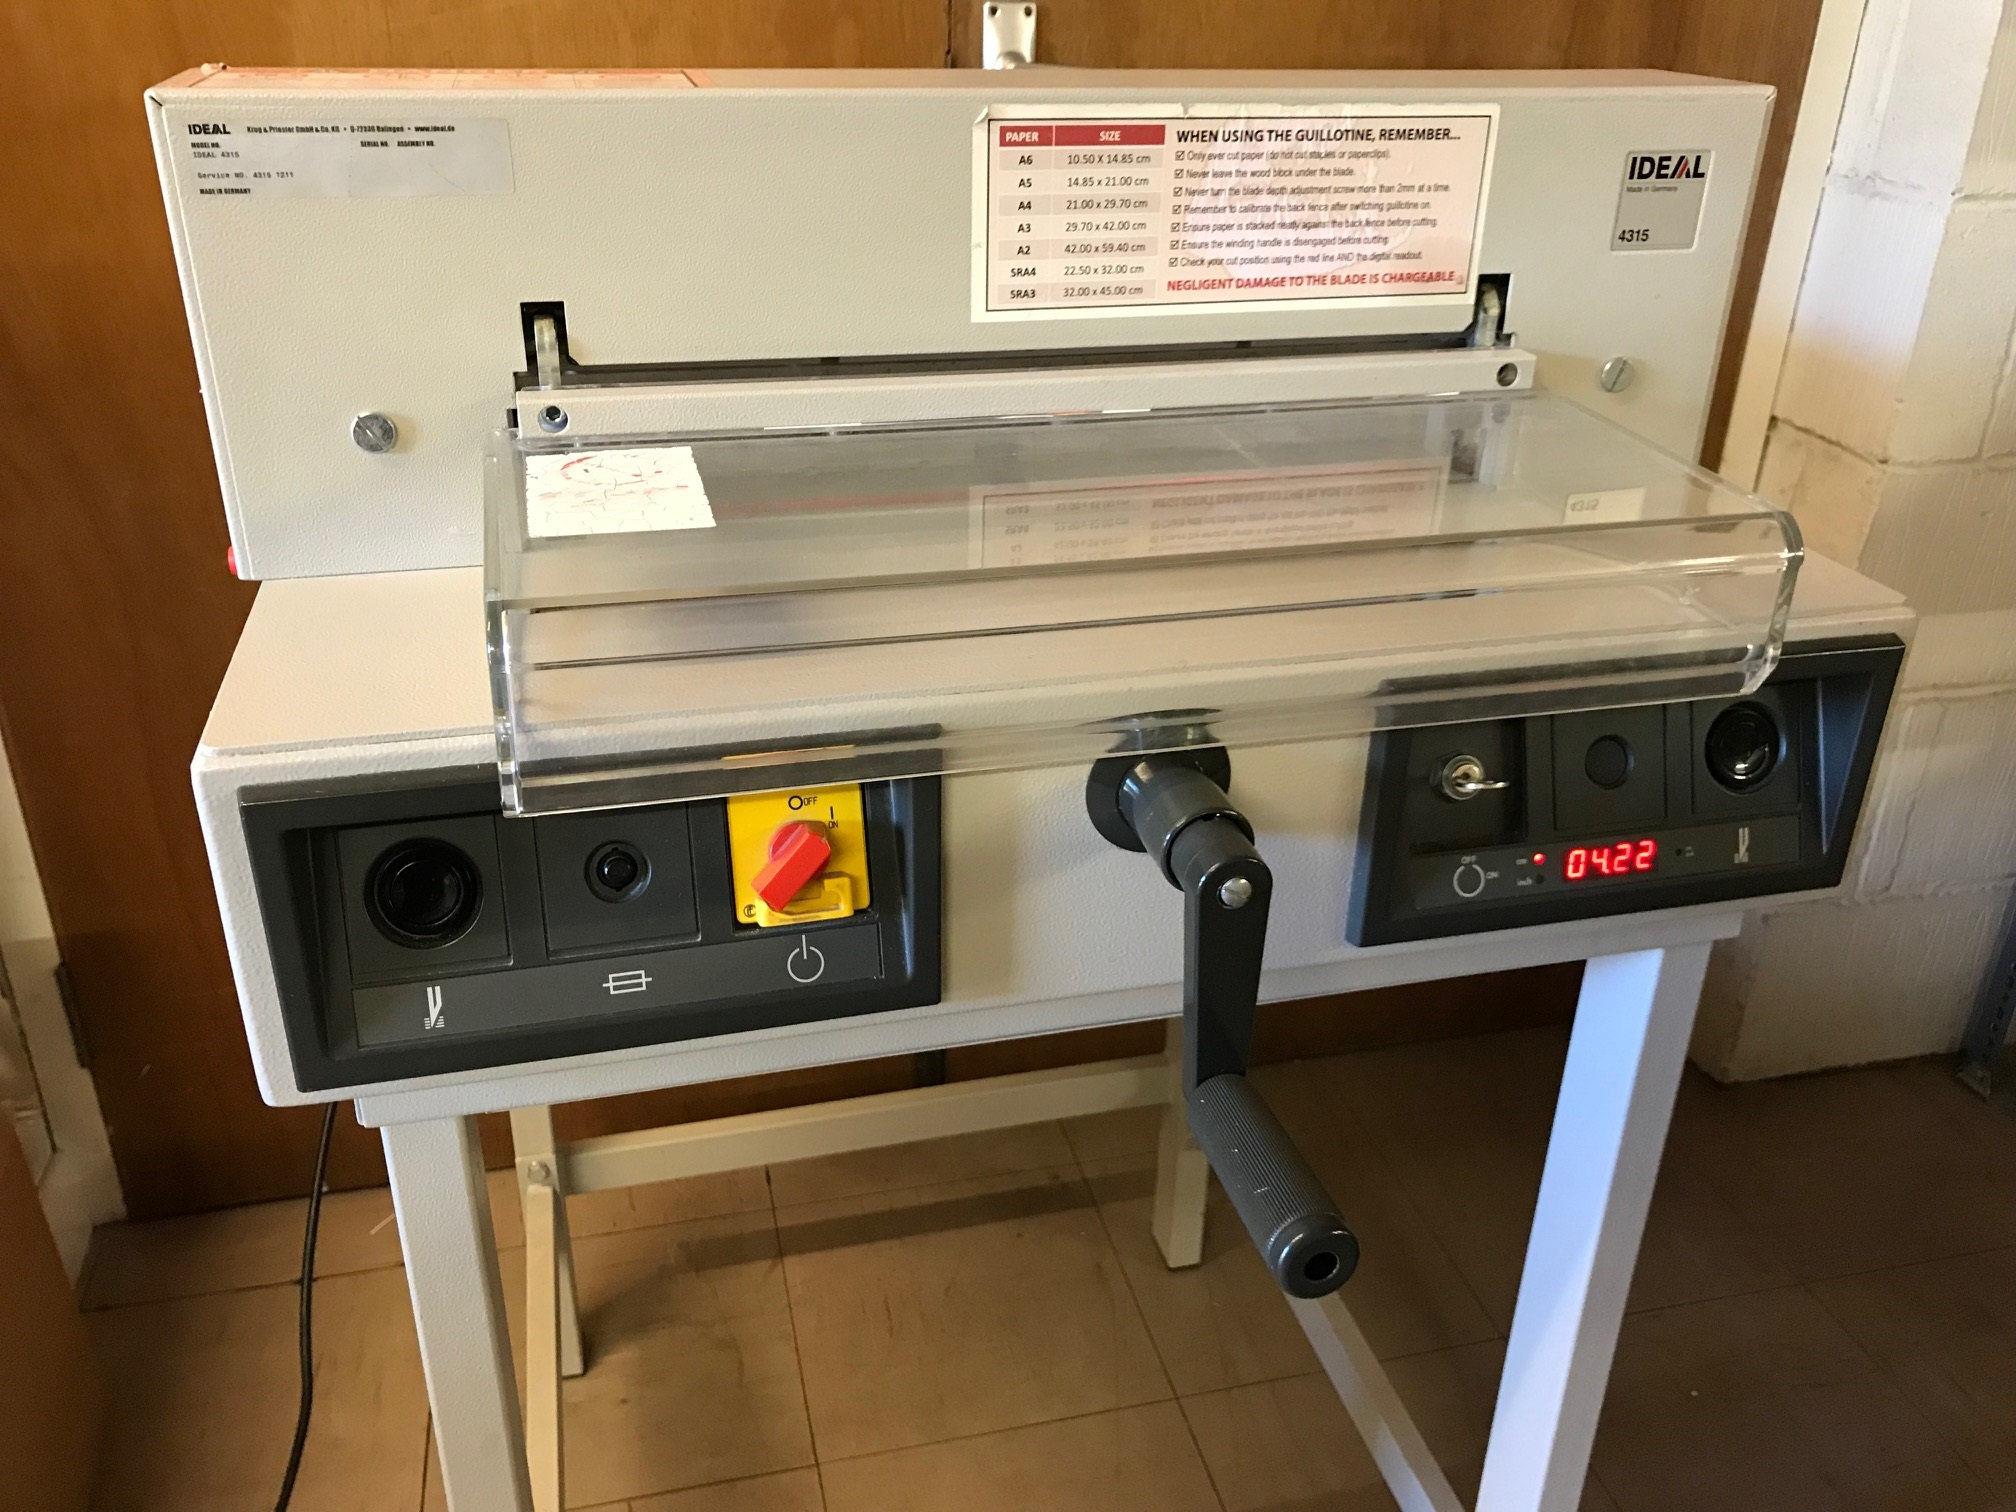 Used IDEAL 4315 Desktop Guillotine Cutter